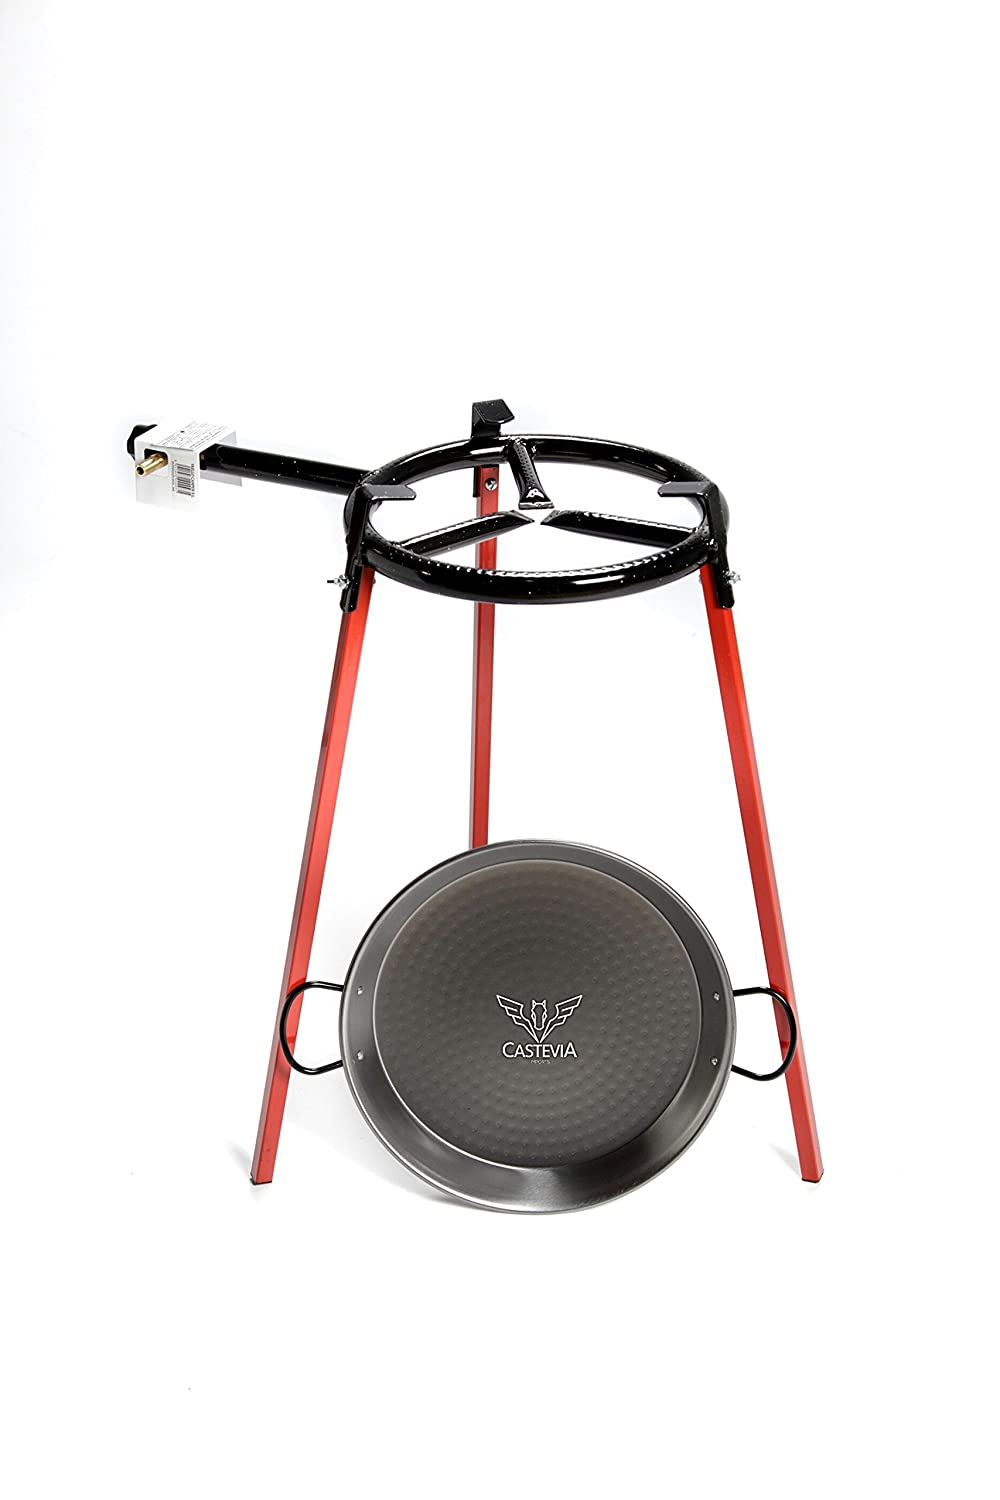 Eco Set paella pan 46cm: set of 3 square support legs + 46cm polished steel paella pan + 400mm gas burner by Vaello Campos